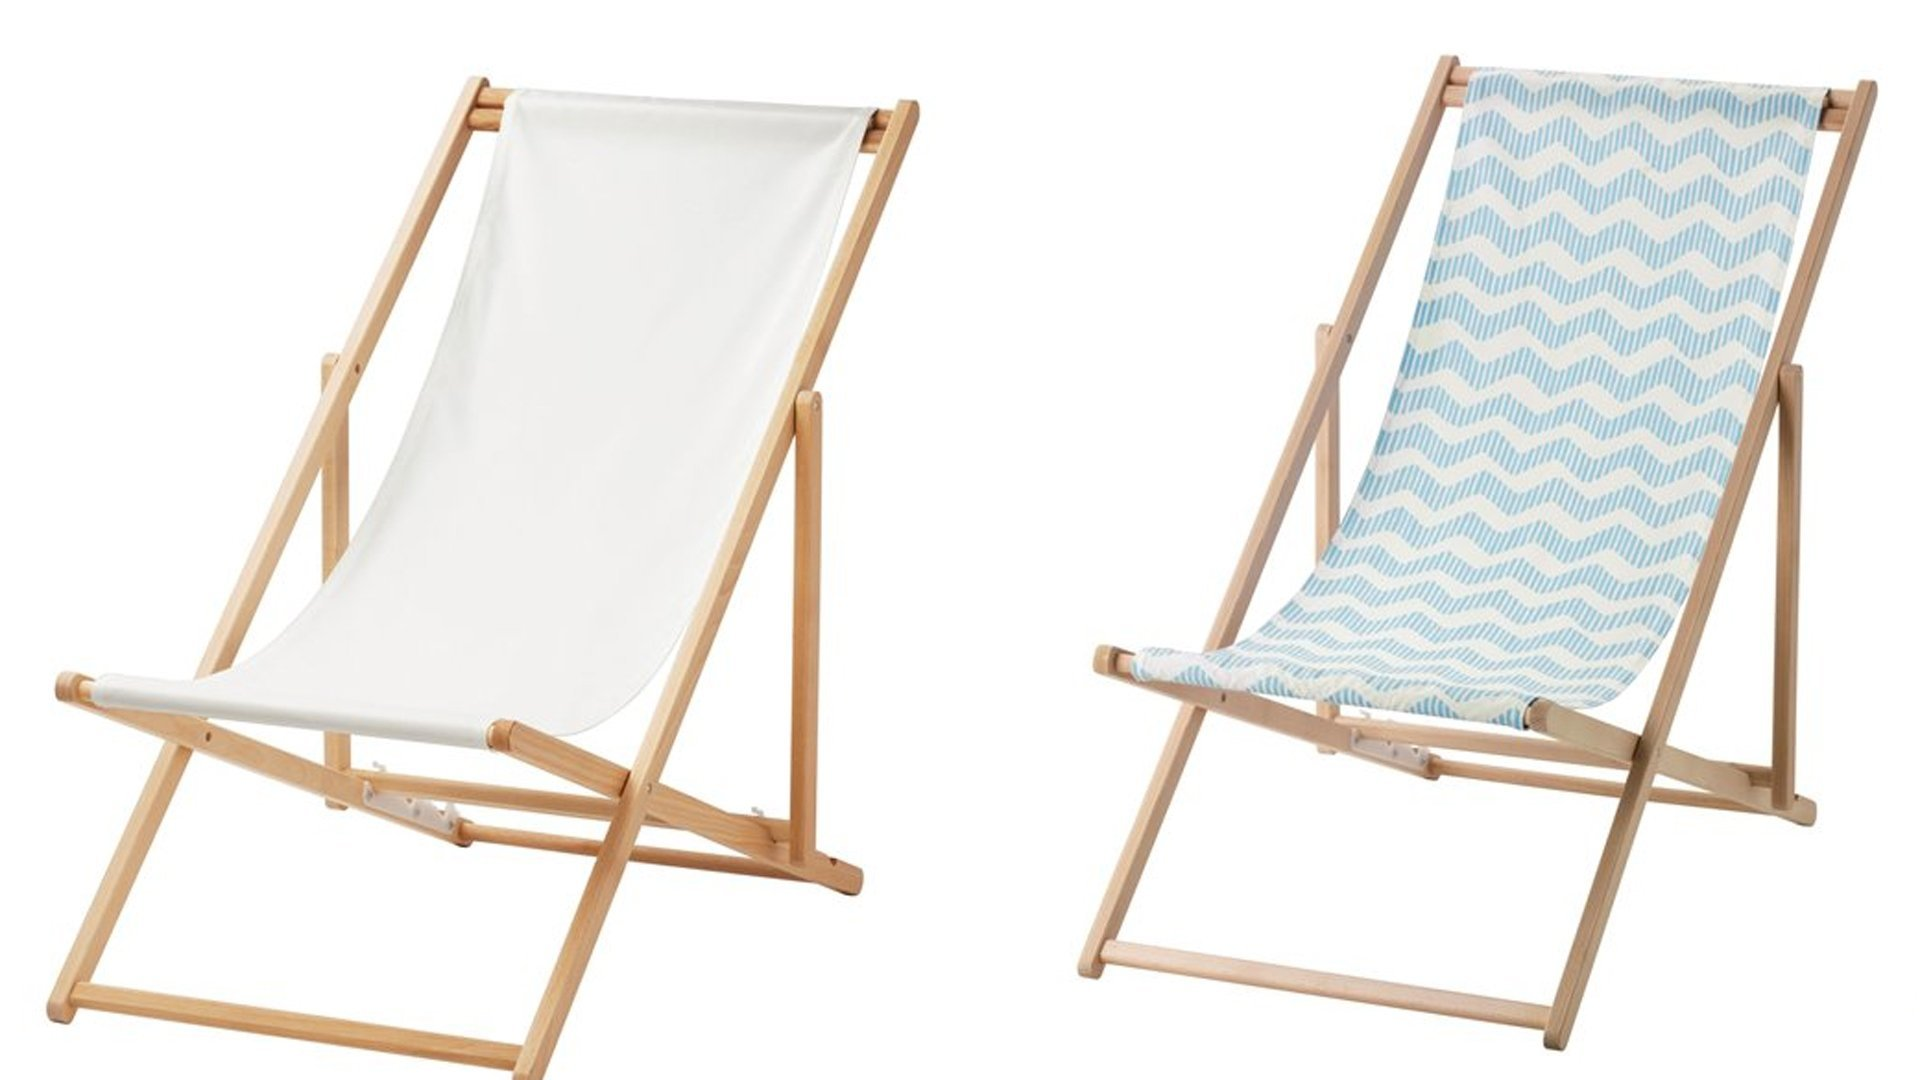 Swedish-based retailer IKEA recalled its line of folding beach chairs due to an amputation hazard to fingertips. (Source: IKEA)